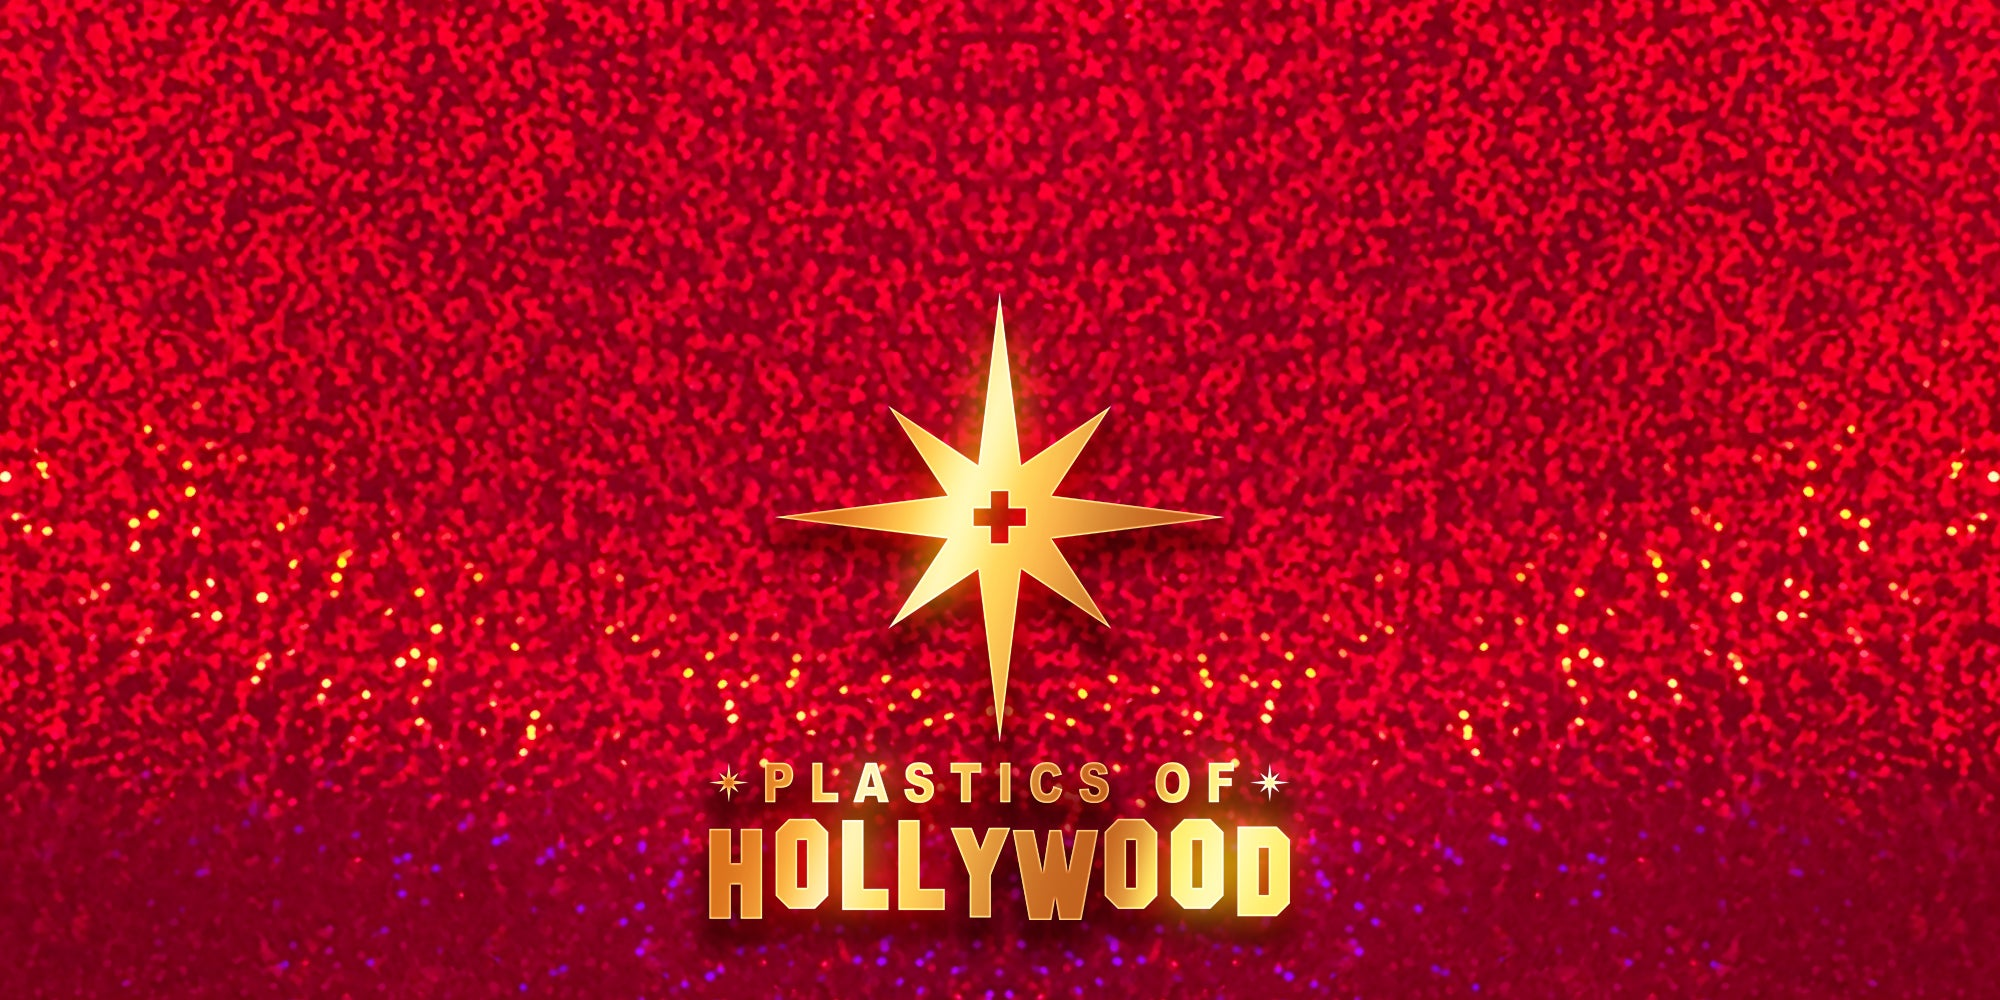 Plastics of Hollywood